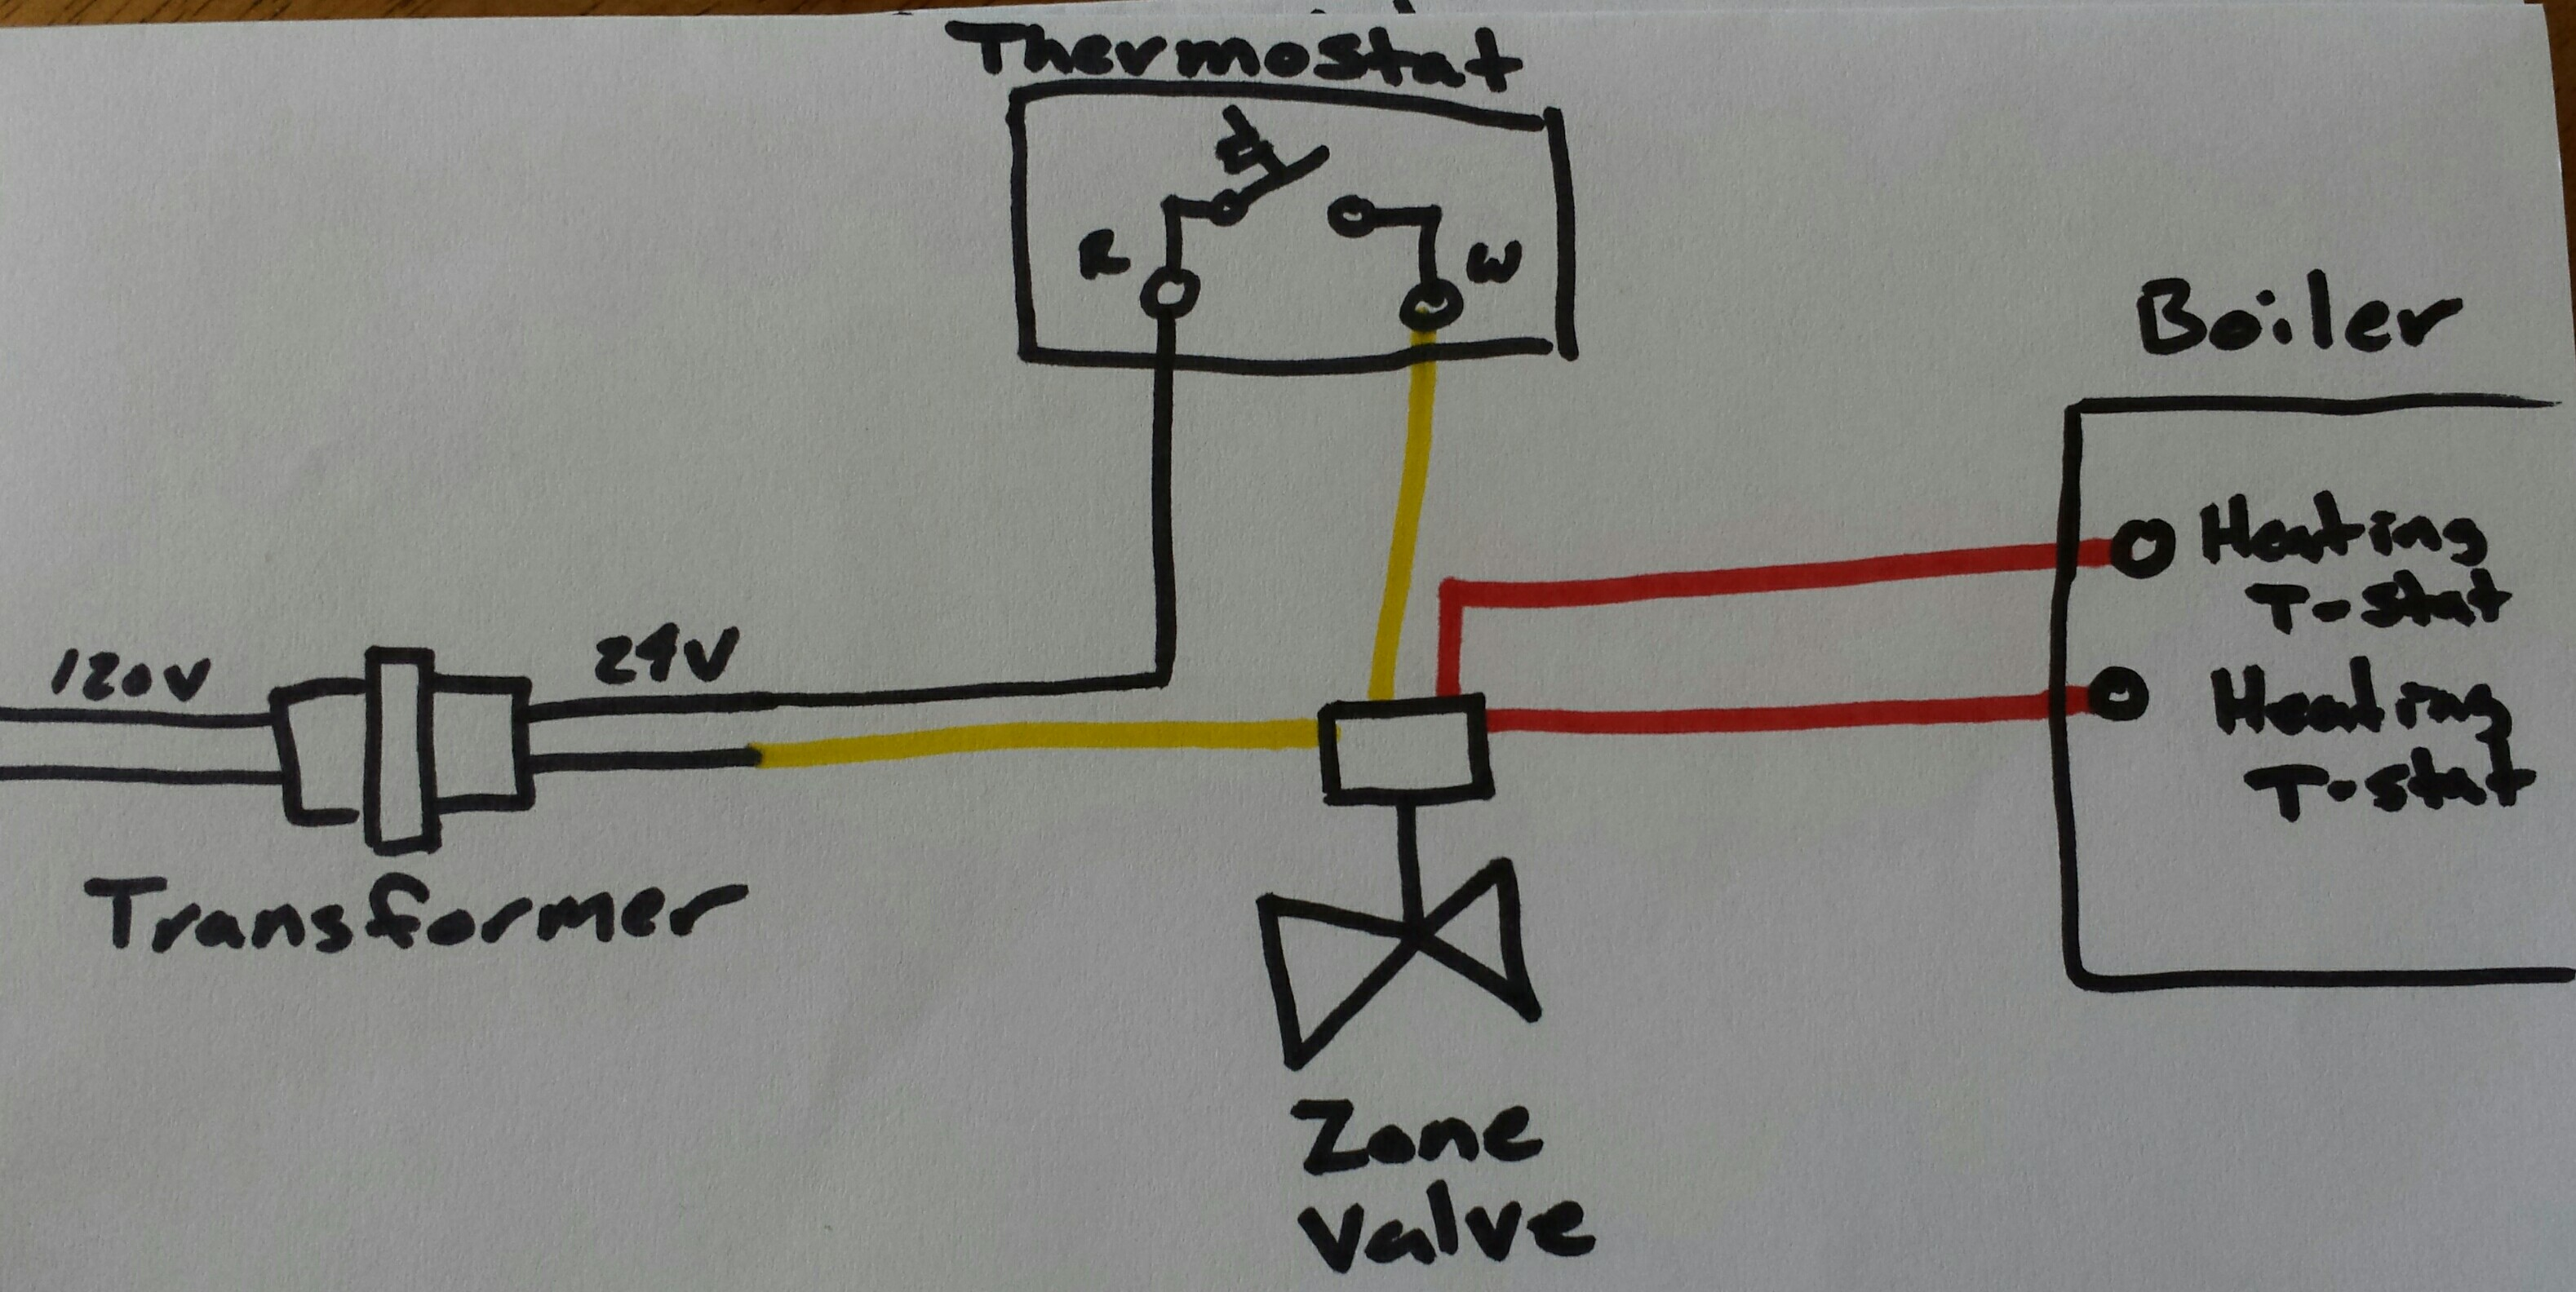 Taco Zone Valves Wiring Diagram Auto Electrical 2002 Dodge Grand Caravan Engine Cooling System Hoses Need Help With Completing Thermostat And Low